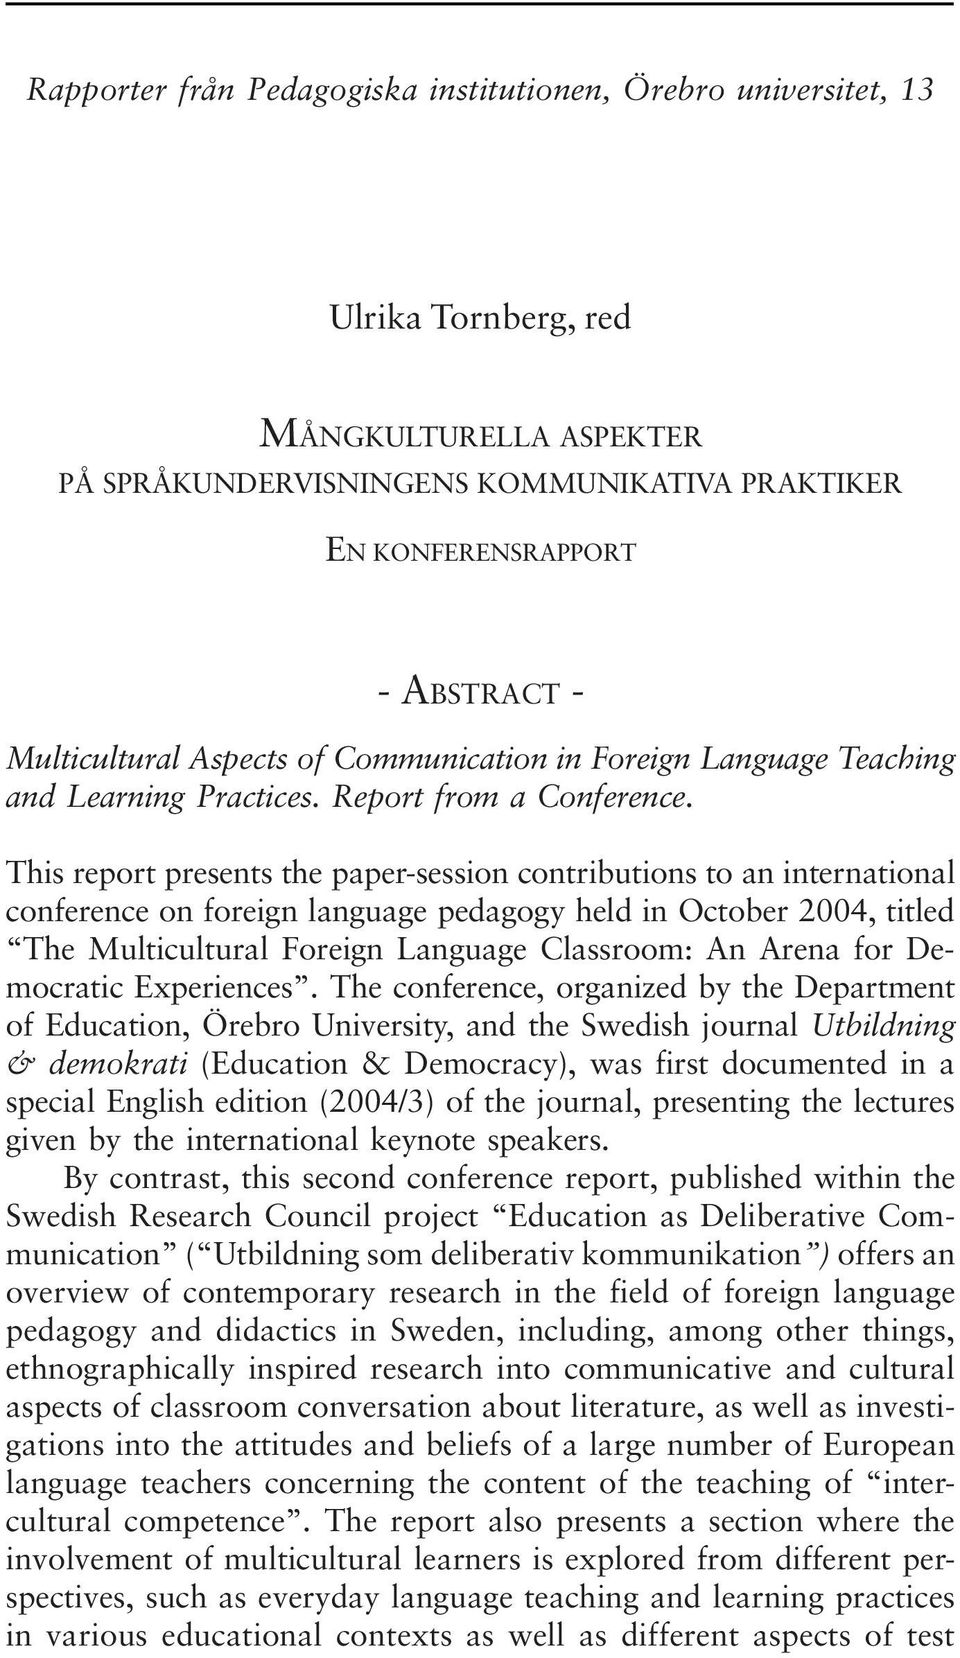 This report presents the paper-session contributions to an international conference on foreign language pedagogy held in October 2004, titled The Multicultural Foreign Language Classroom: An Arena